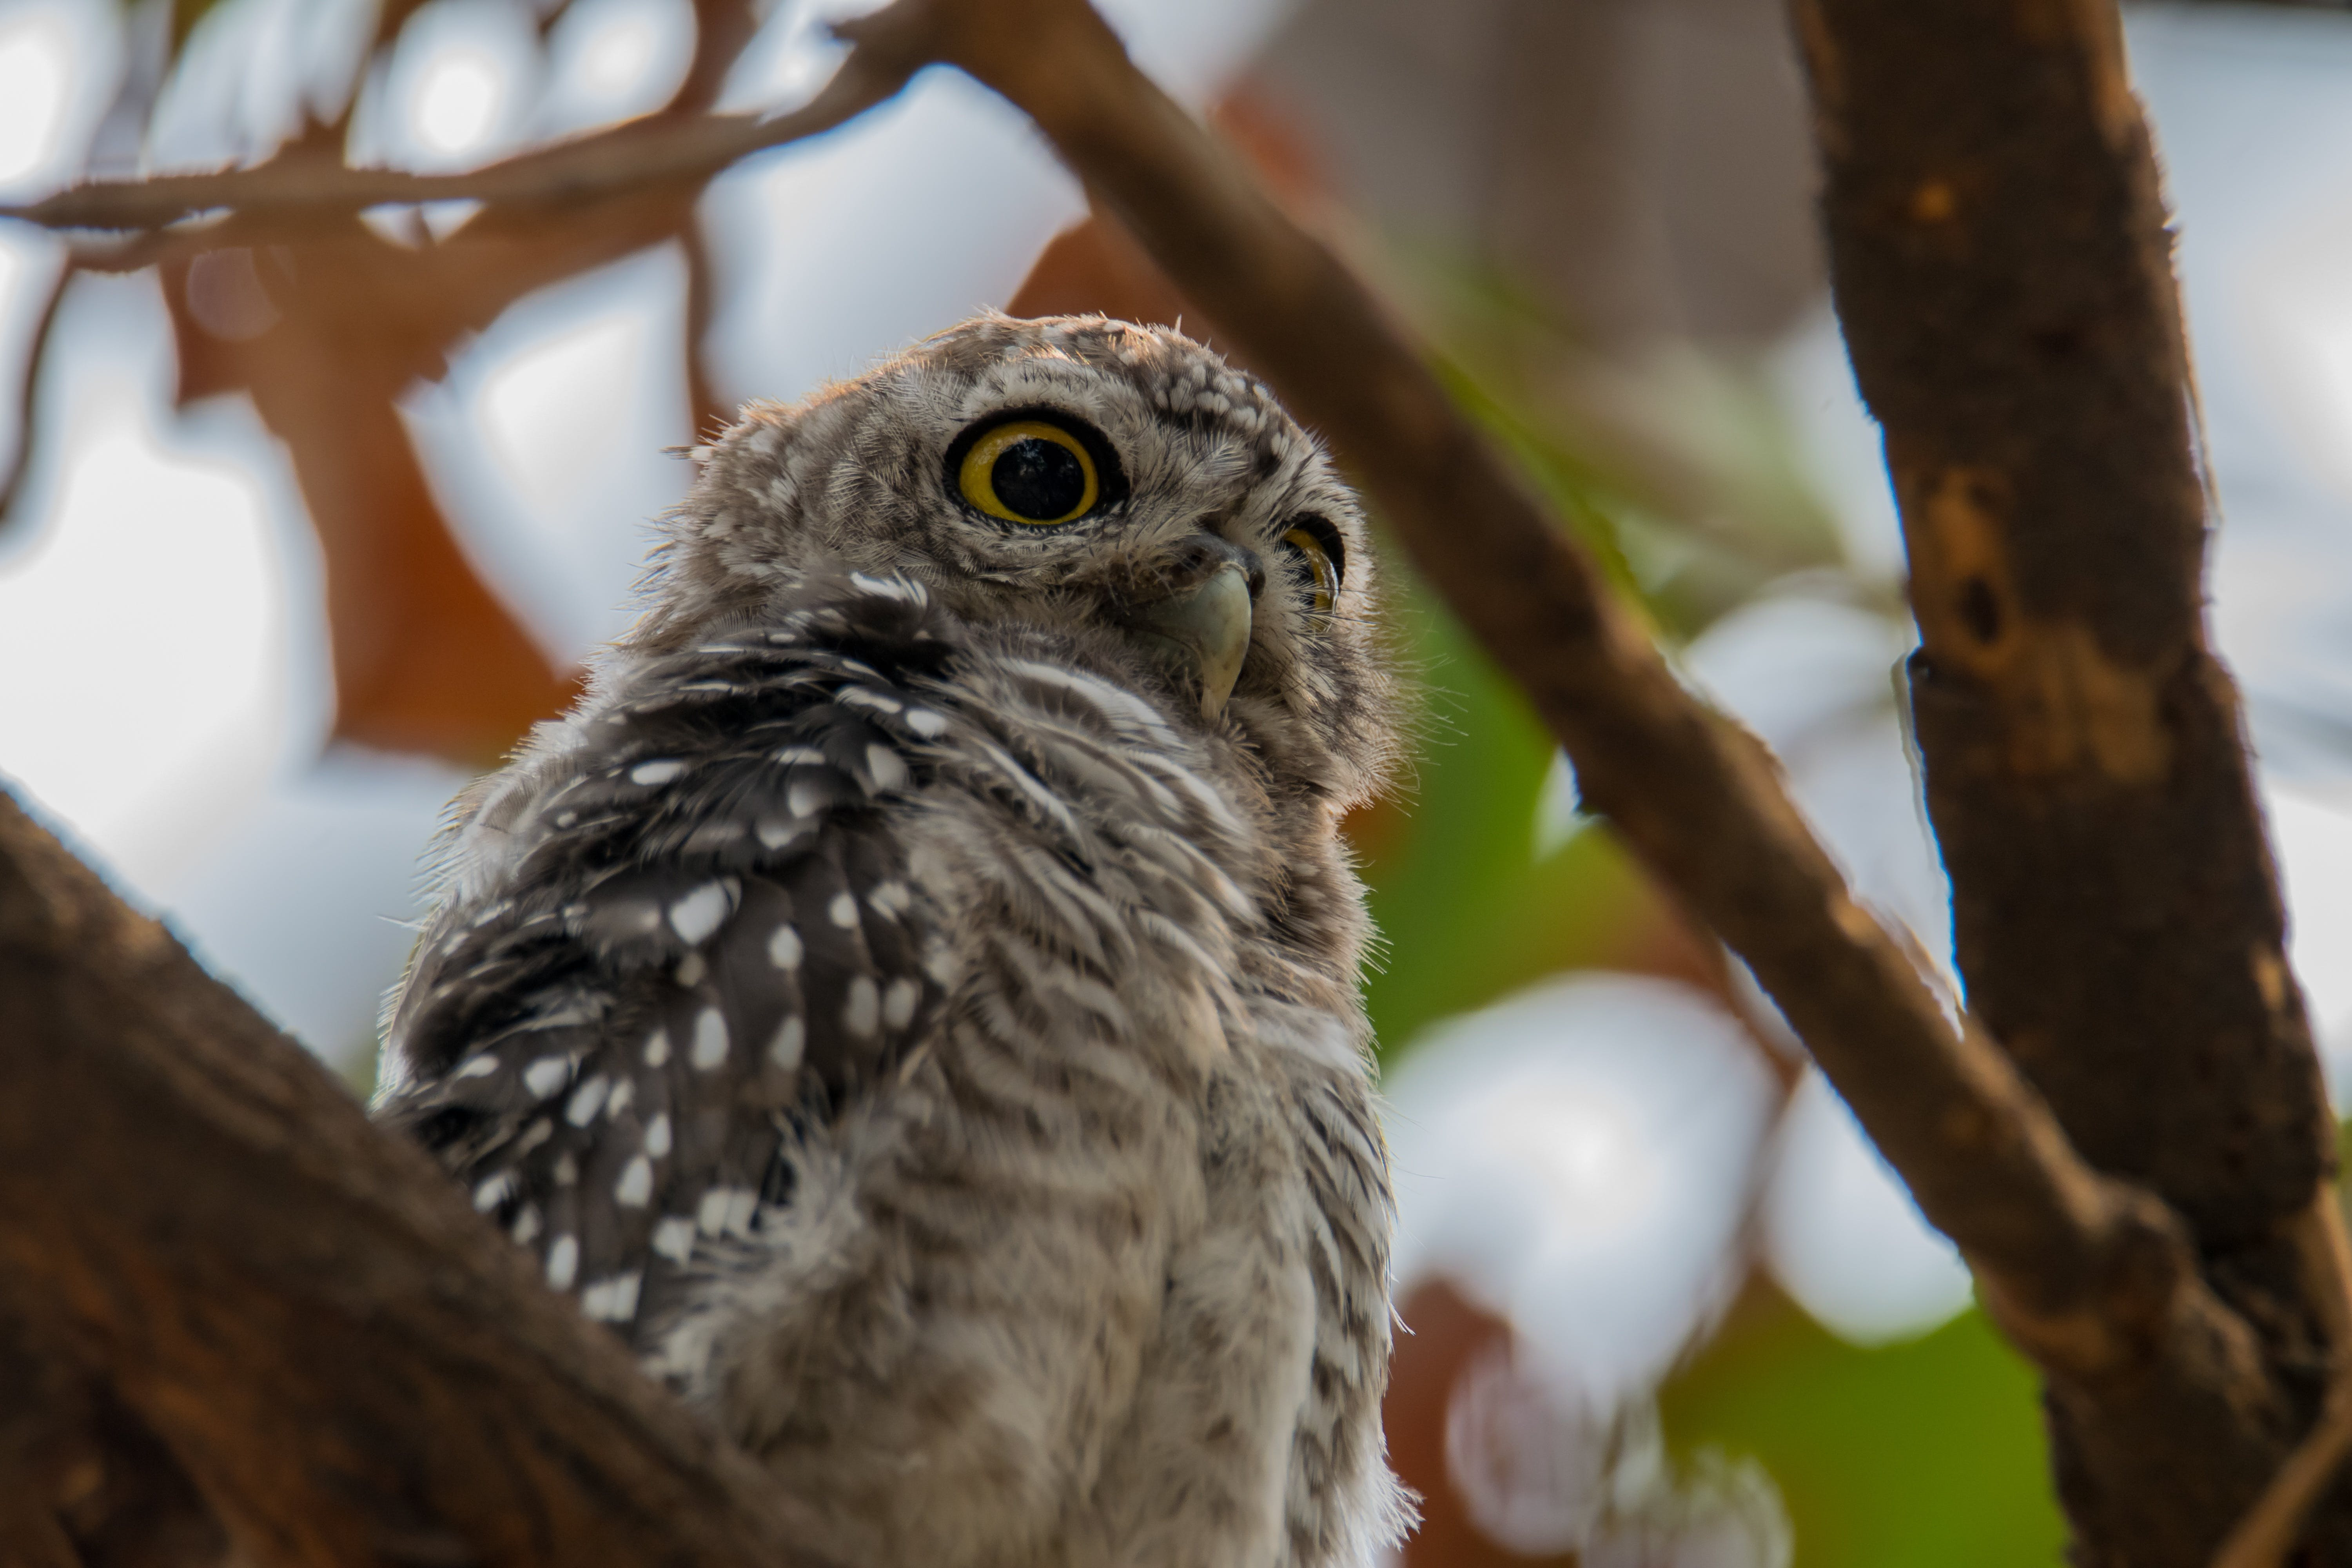 Gray and Black Owl Standing on Branch of Tree